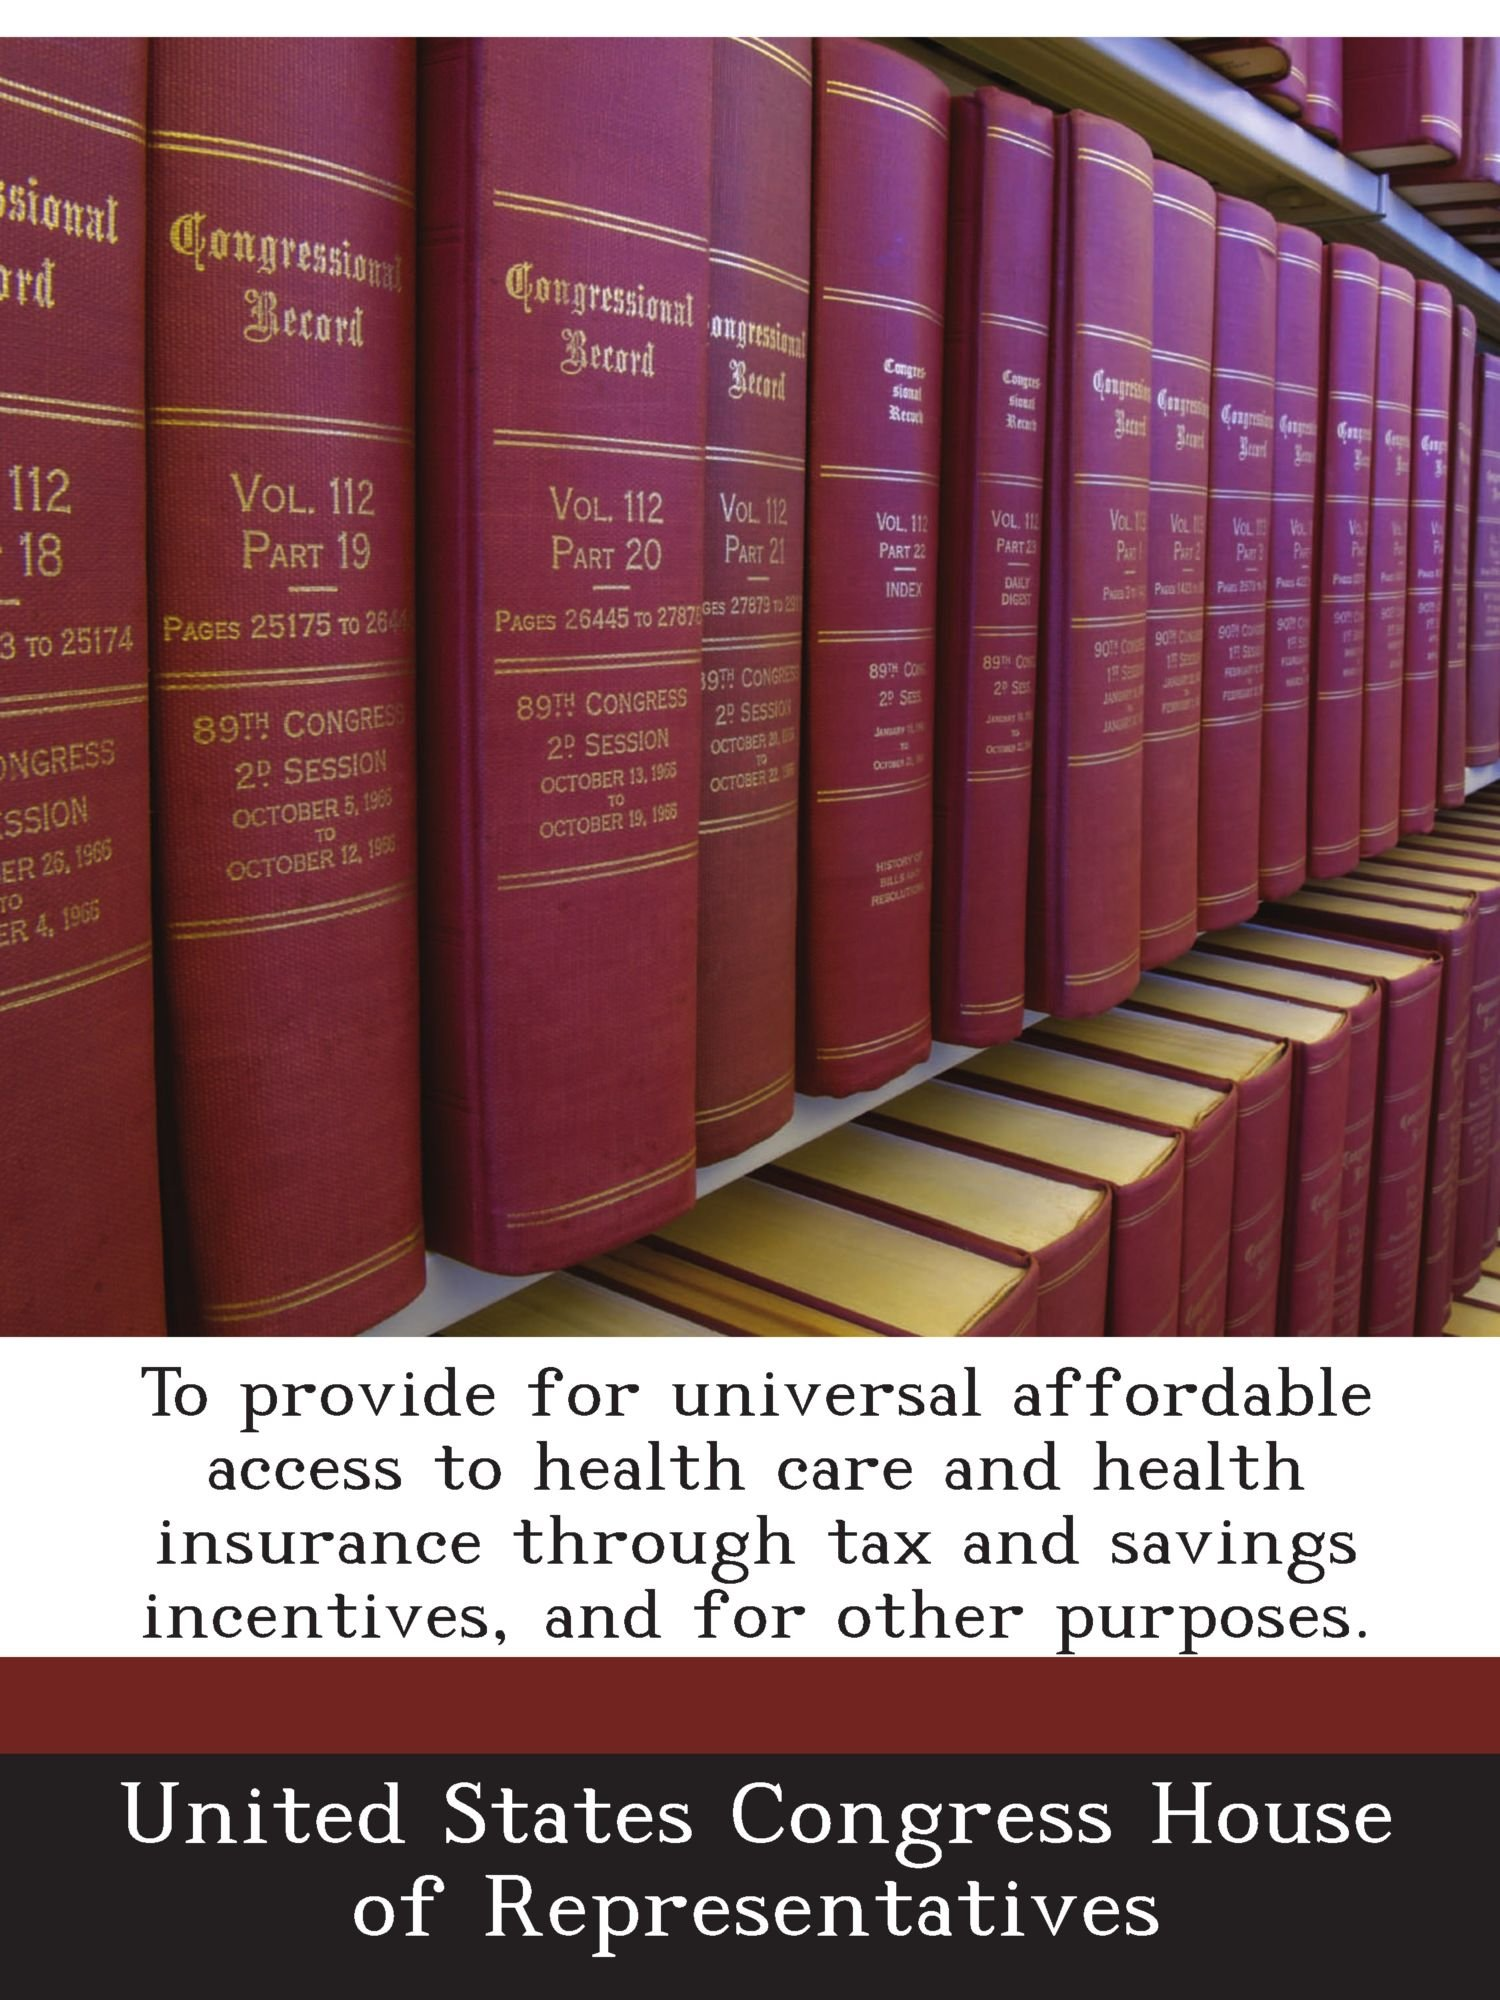 To provide for universal affordable access to health care and health insurance through tax and savings incentives, and for other purposes.